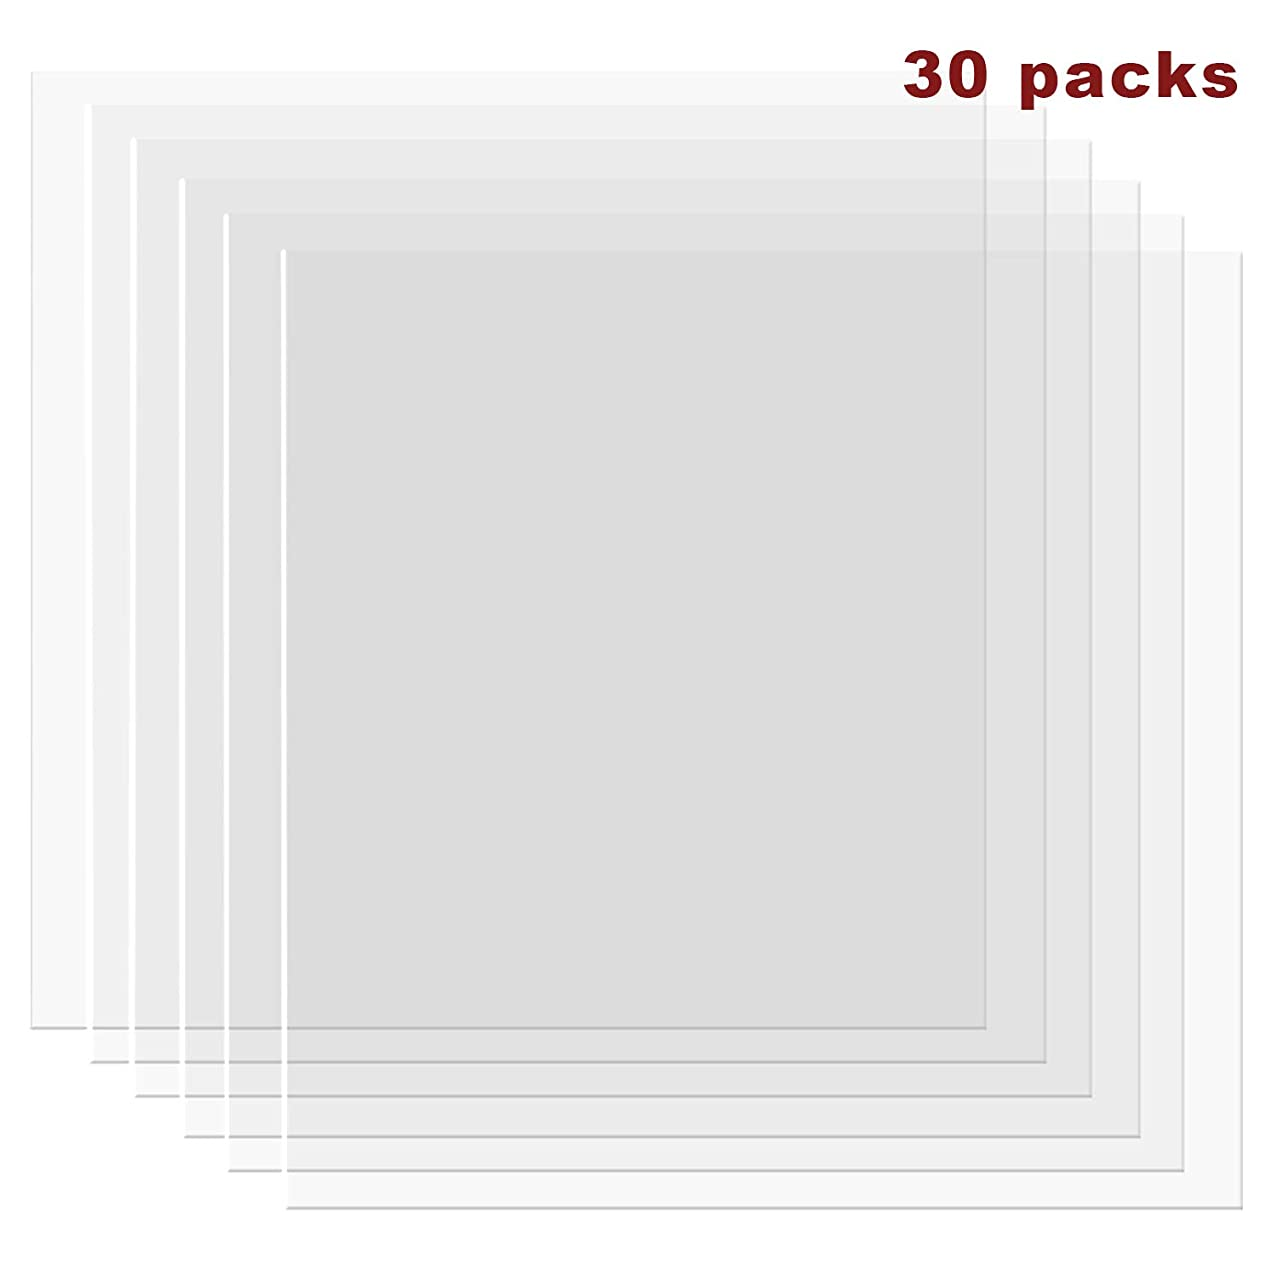 30 Pack 4 mil Blank Stencil Material Mylar Blank Sheets for Stenciling Airbrush Painting Tracing Fabric Templates,12 x 12 Inch